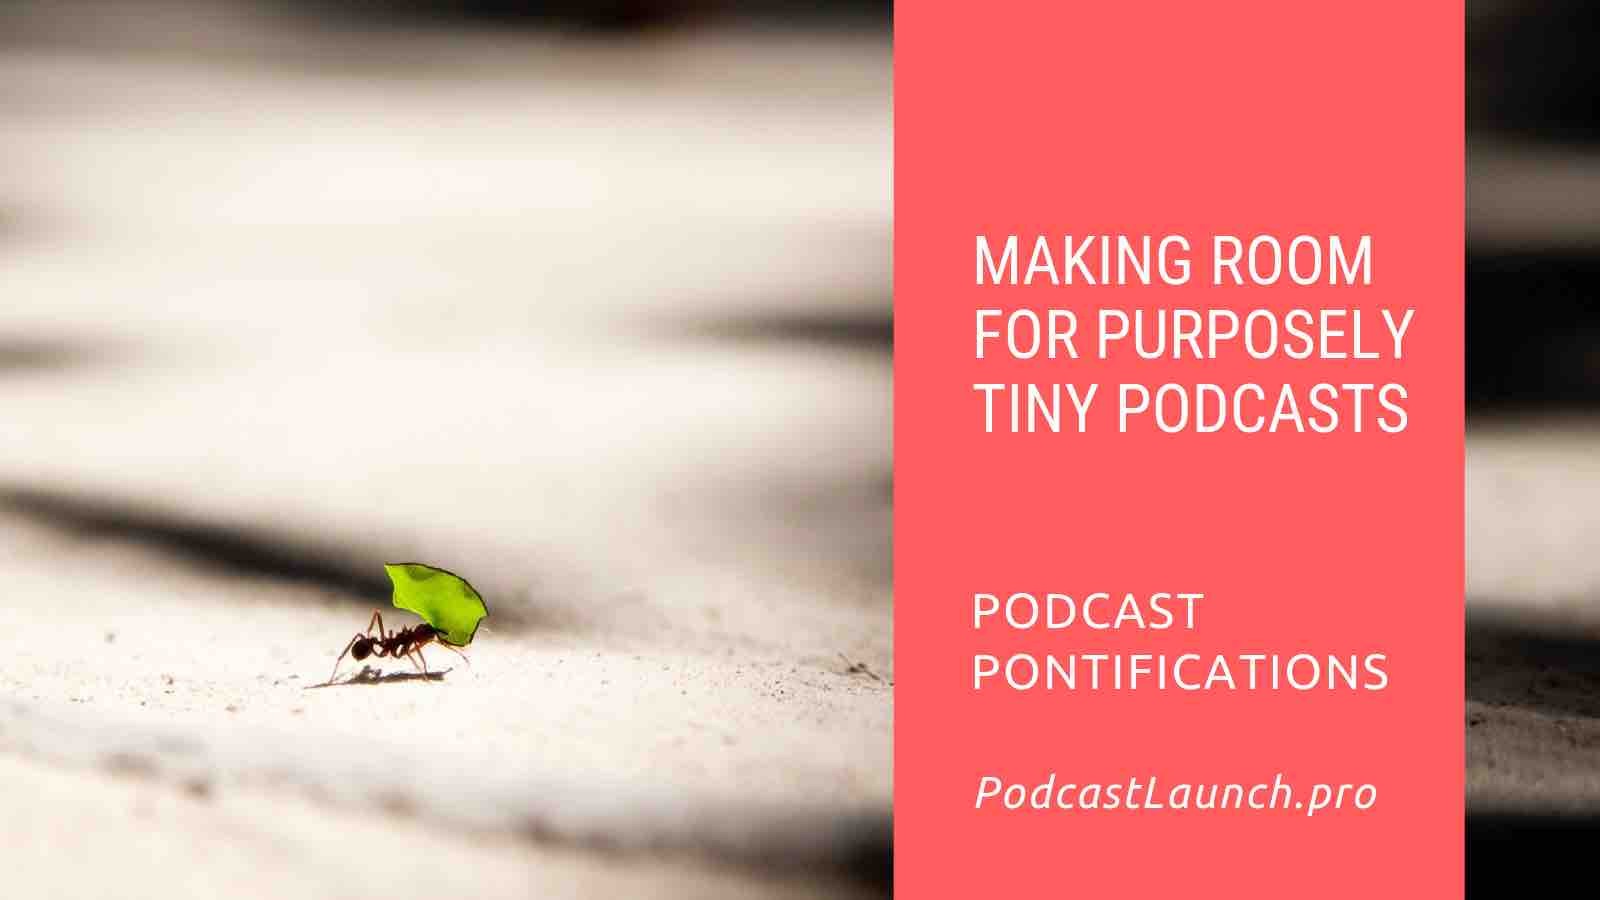 Making Room For Purposely Tiny Podcasts